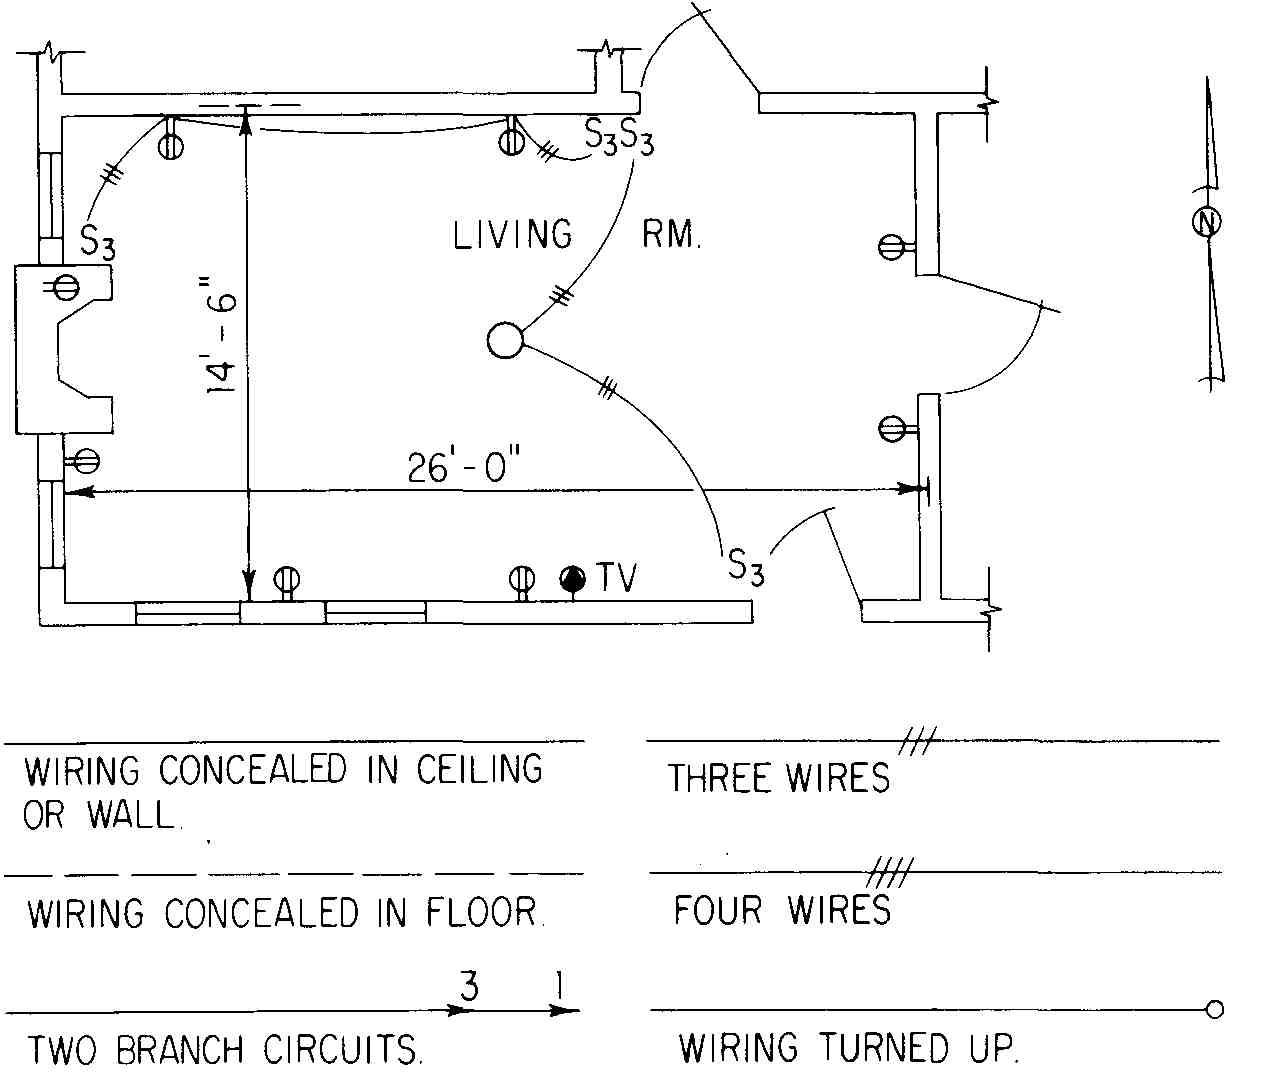 Electrical Drawing For Architectural Plans 240 Volt 3 Phase Wiring Diagram On Reading